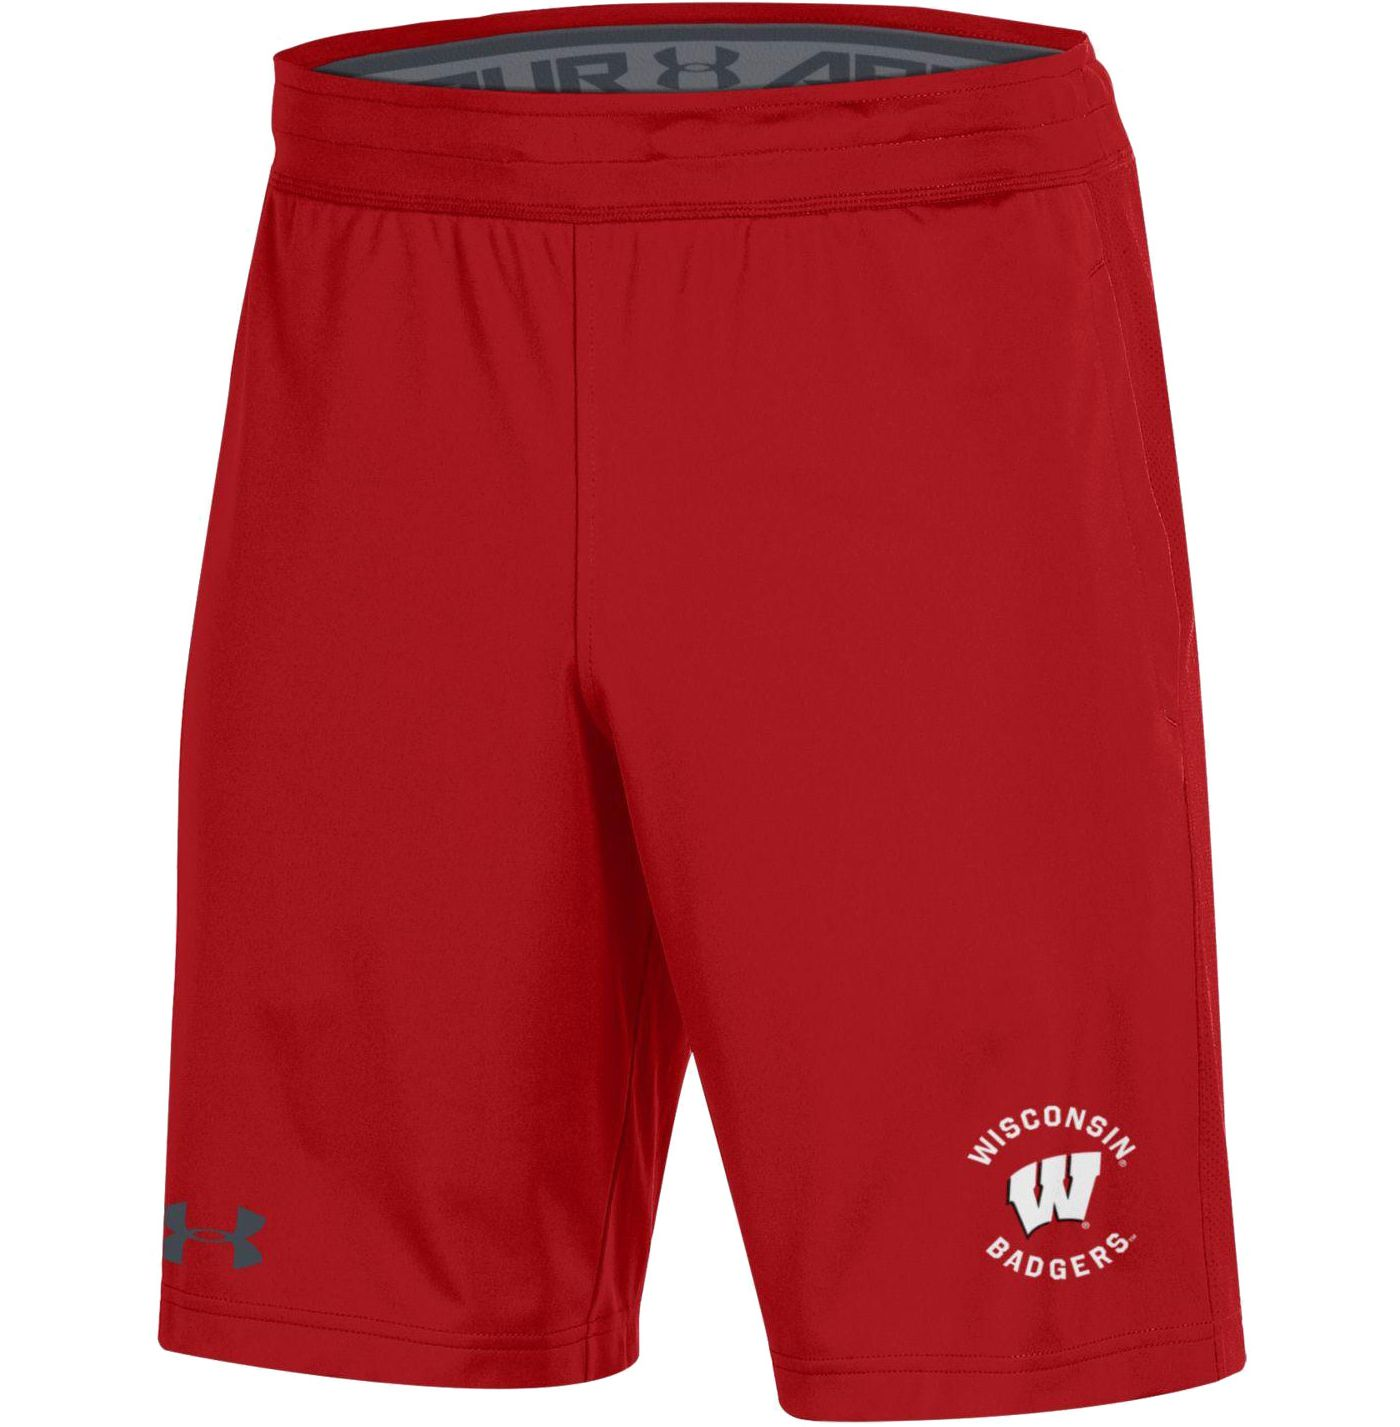 Under Armour Men's Wisconsin Badgers Red Raid Performance Shorts